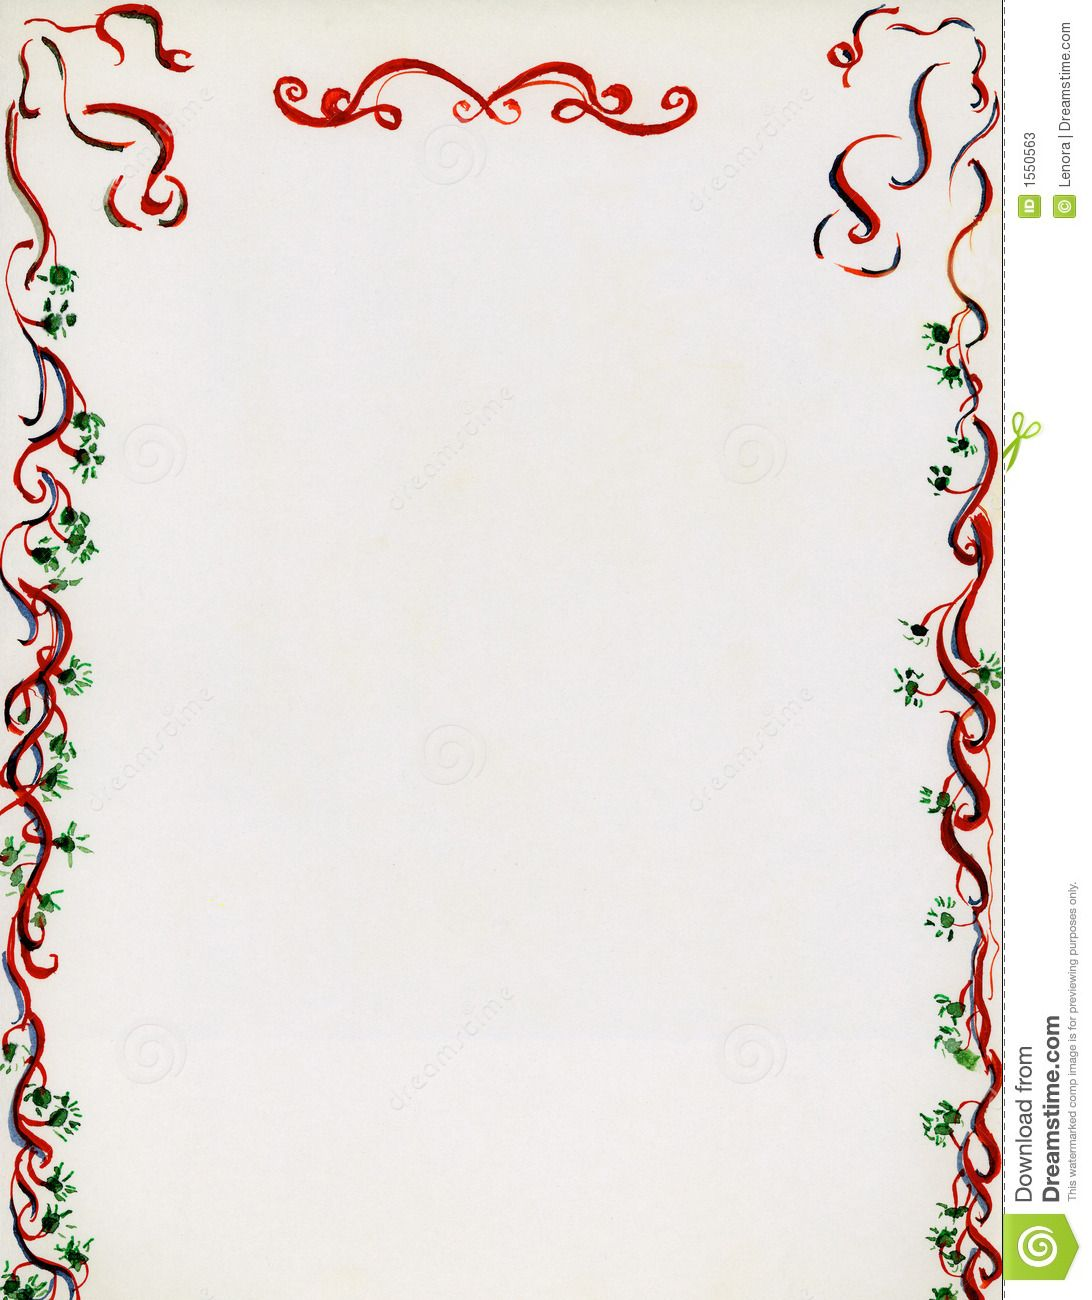 Christmas Letterhead Templates For Word